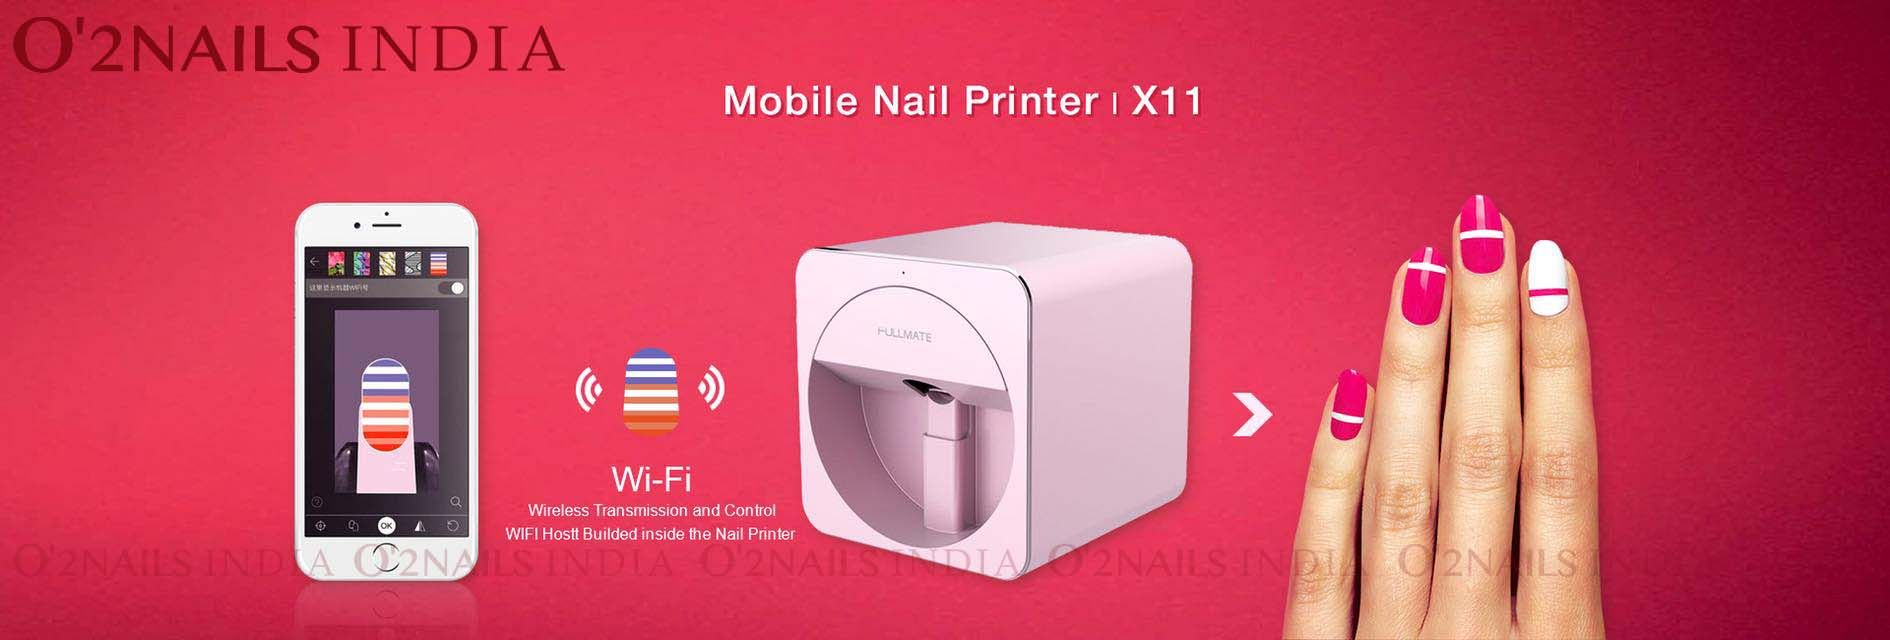 The Mobile Nail Printer X11 Is A State Of Art Machine That Prints Any Pattern